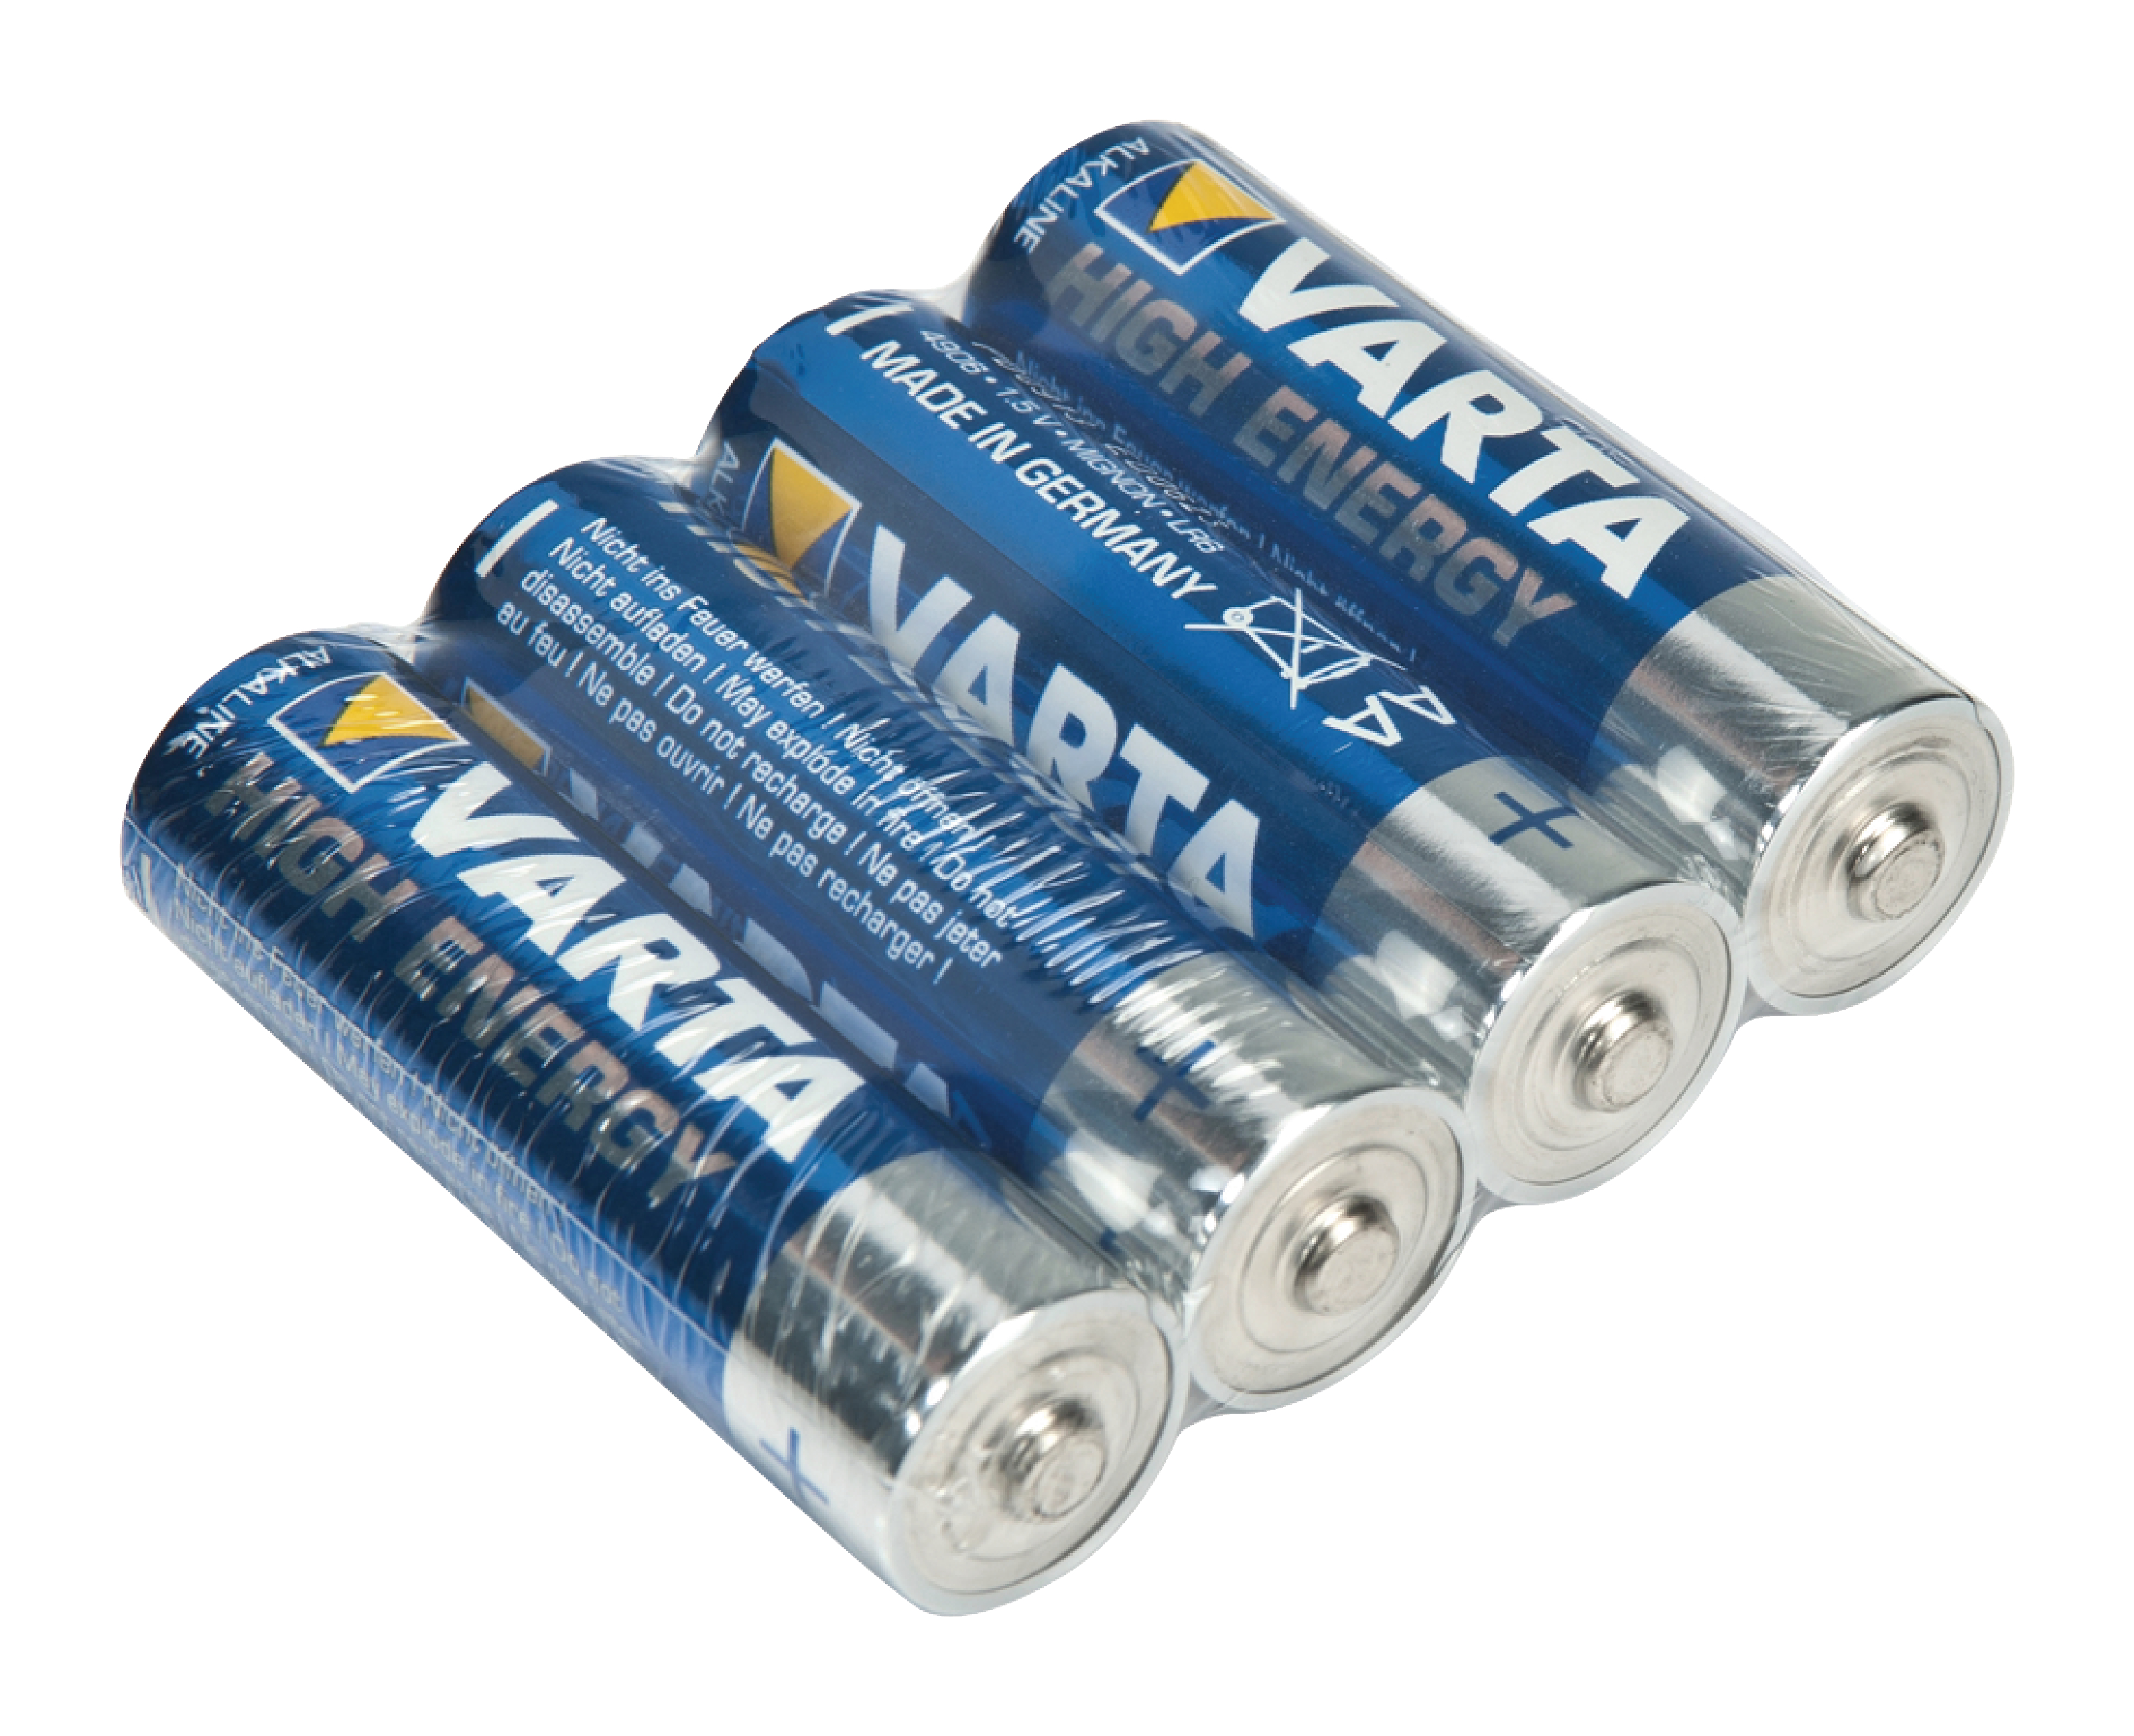 varta 4906 tr varta alkaline battery aa 1 5 v high. Black Bedroom Furniture Sets. Home Design Ideas